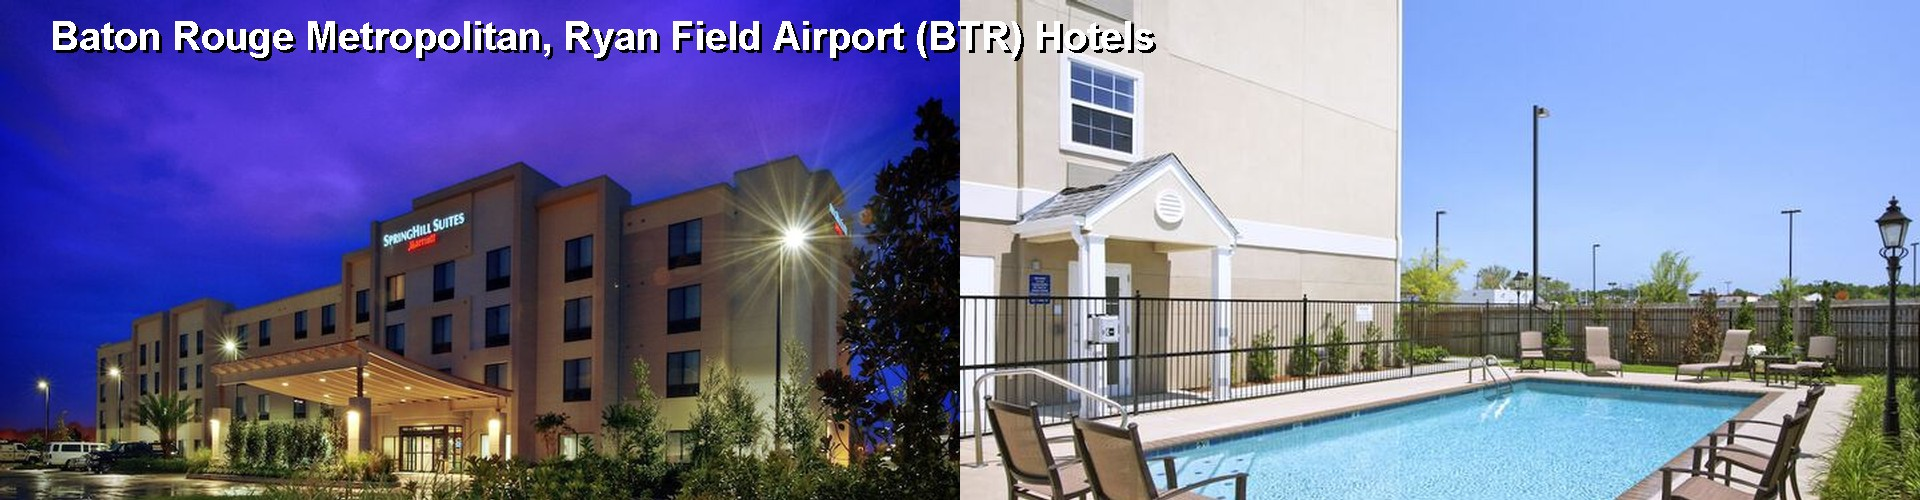 5 Best Hotels near Baton Rouge Metropolitan, Ryan Field Airport (BTR)